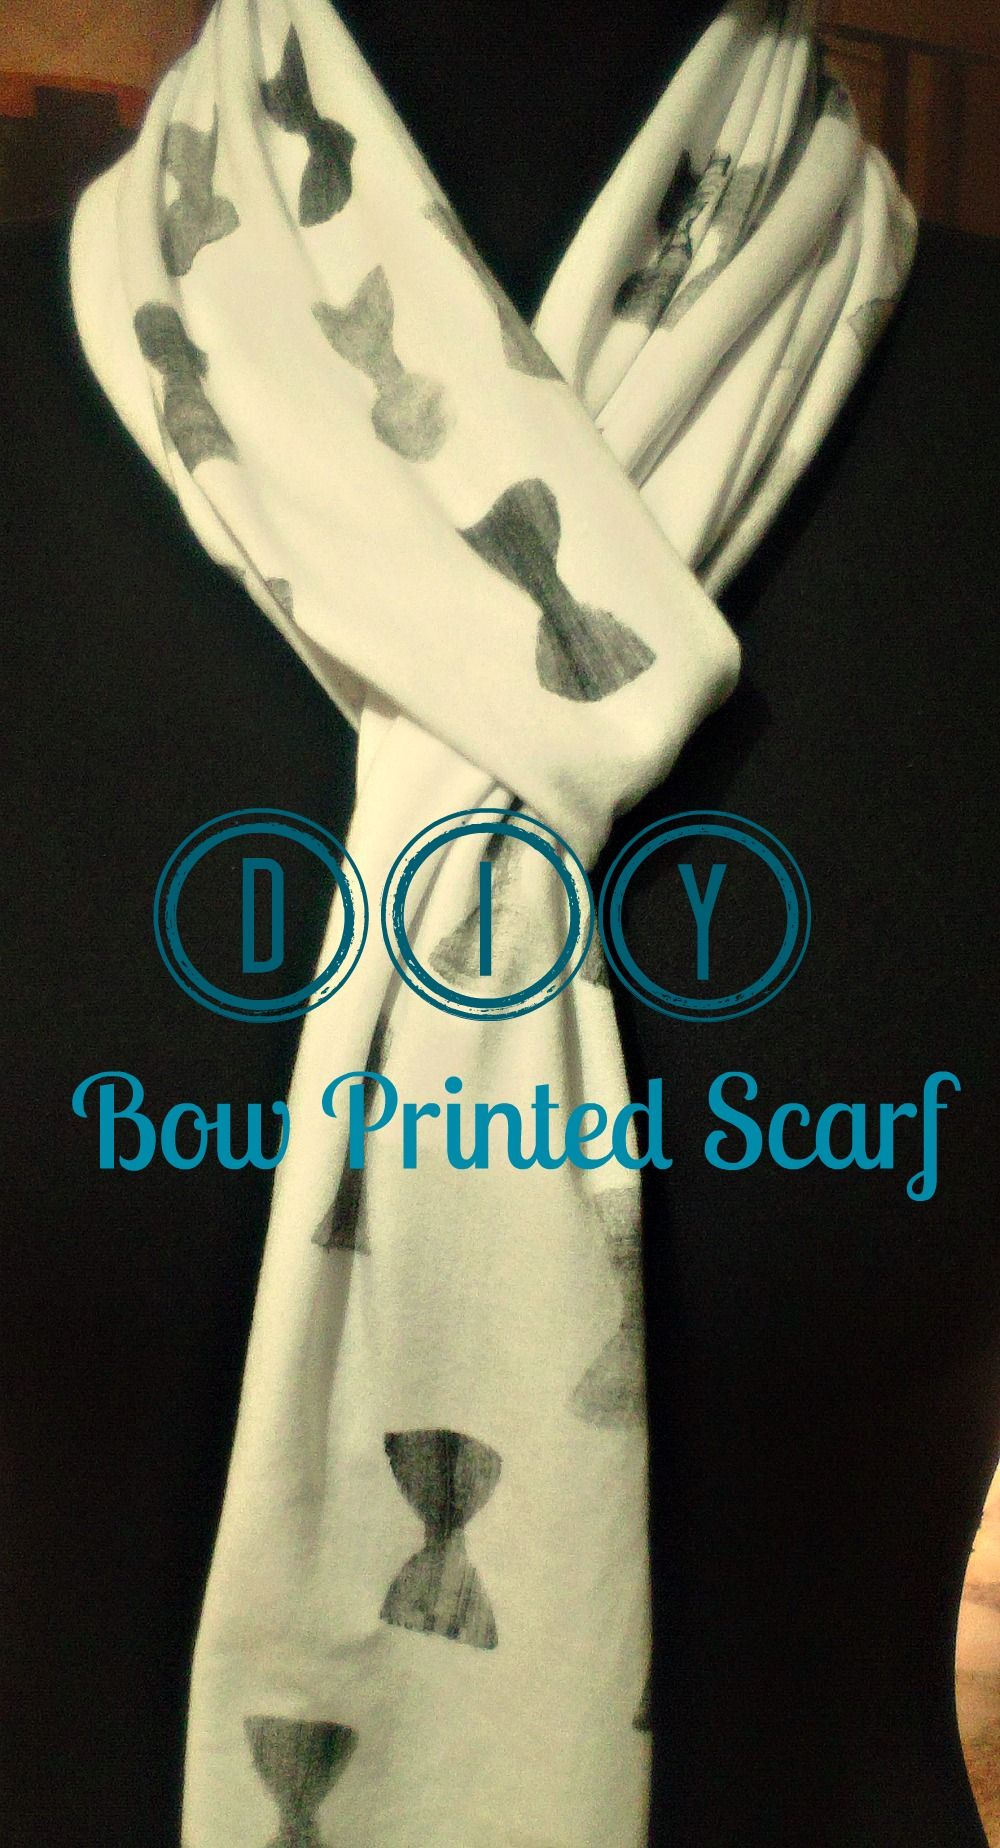 Easy DIY on making your own bow printed scarf! ( Includes template with lots of other shapes)